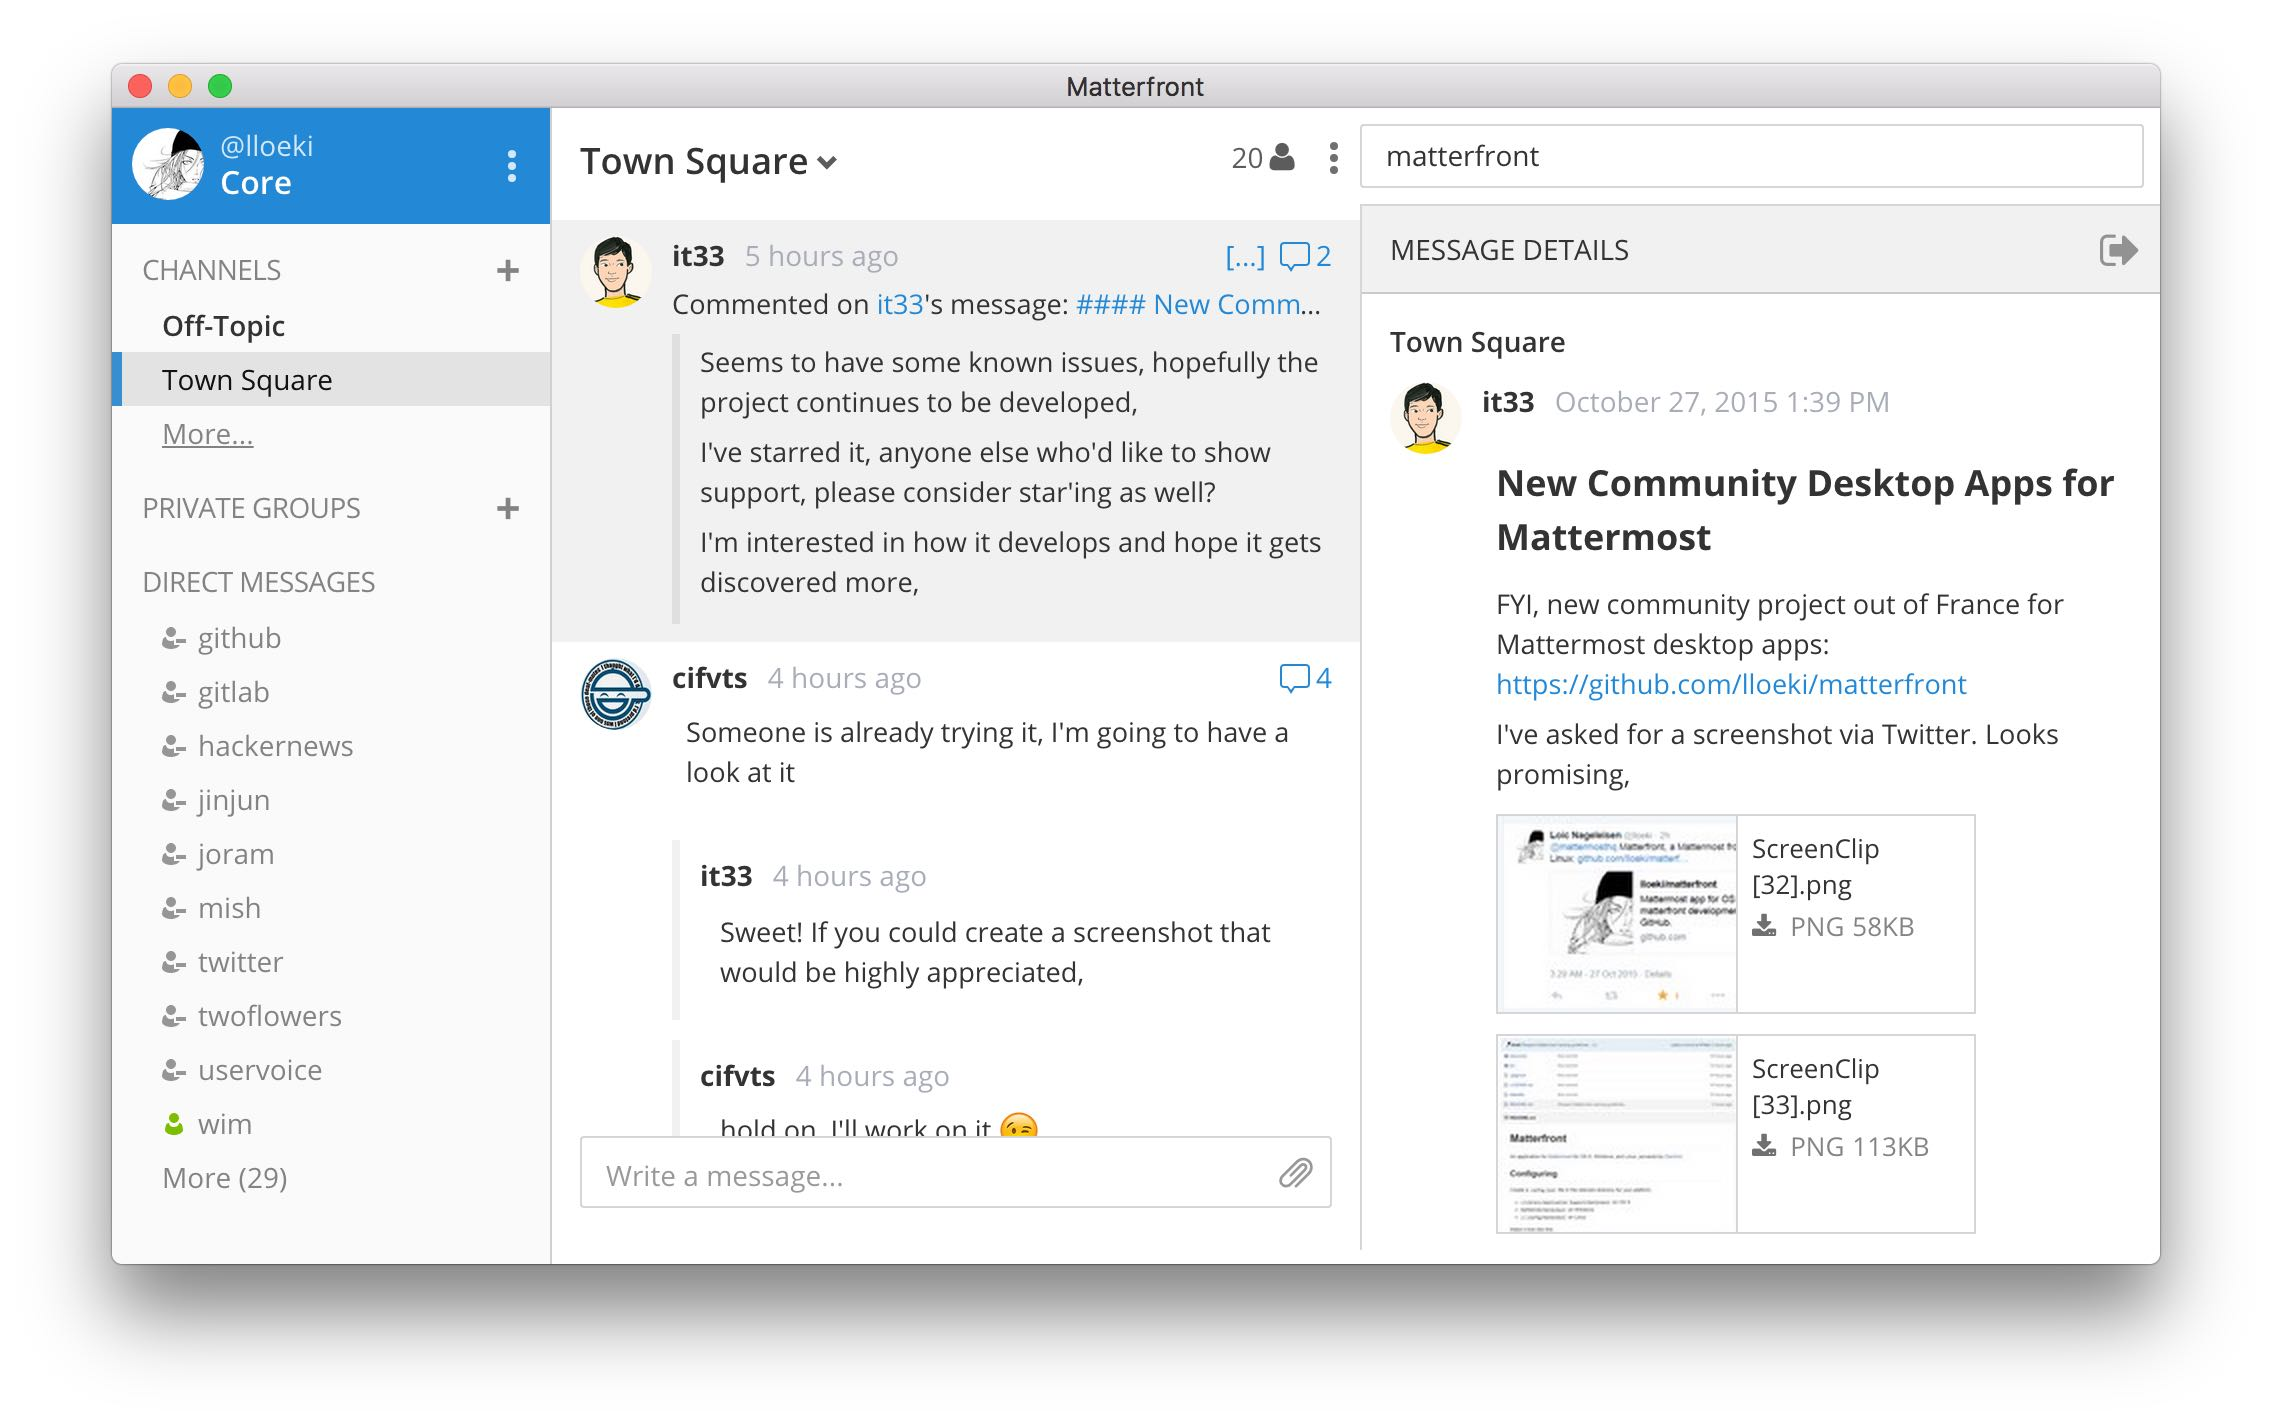 Matterfront desktop client for Mattermost